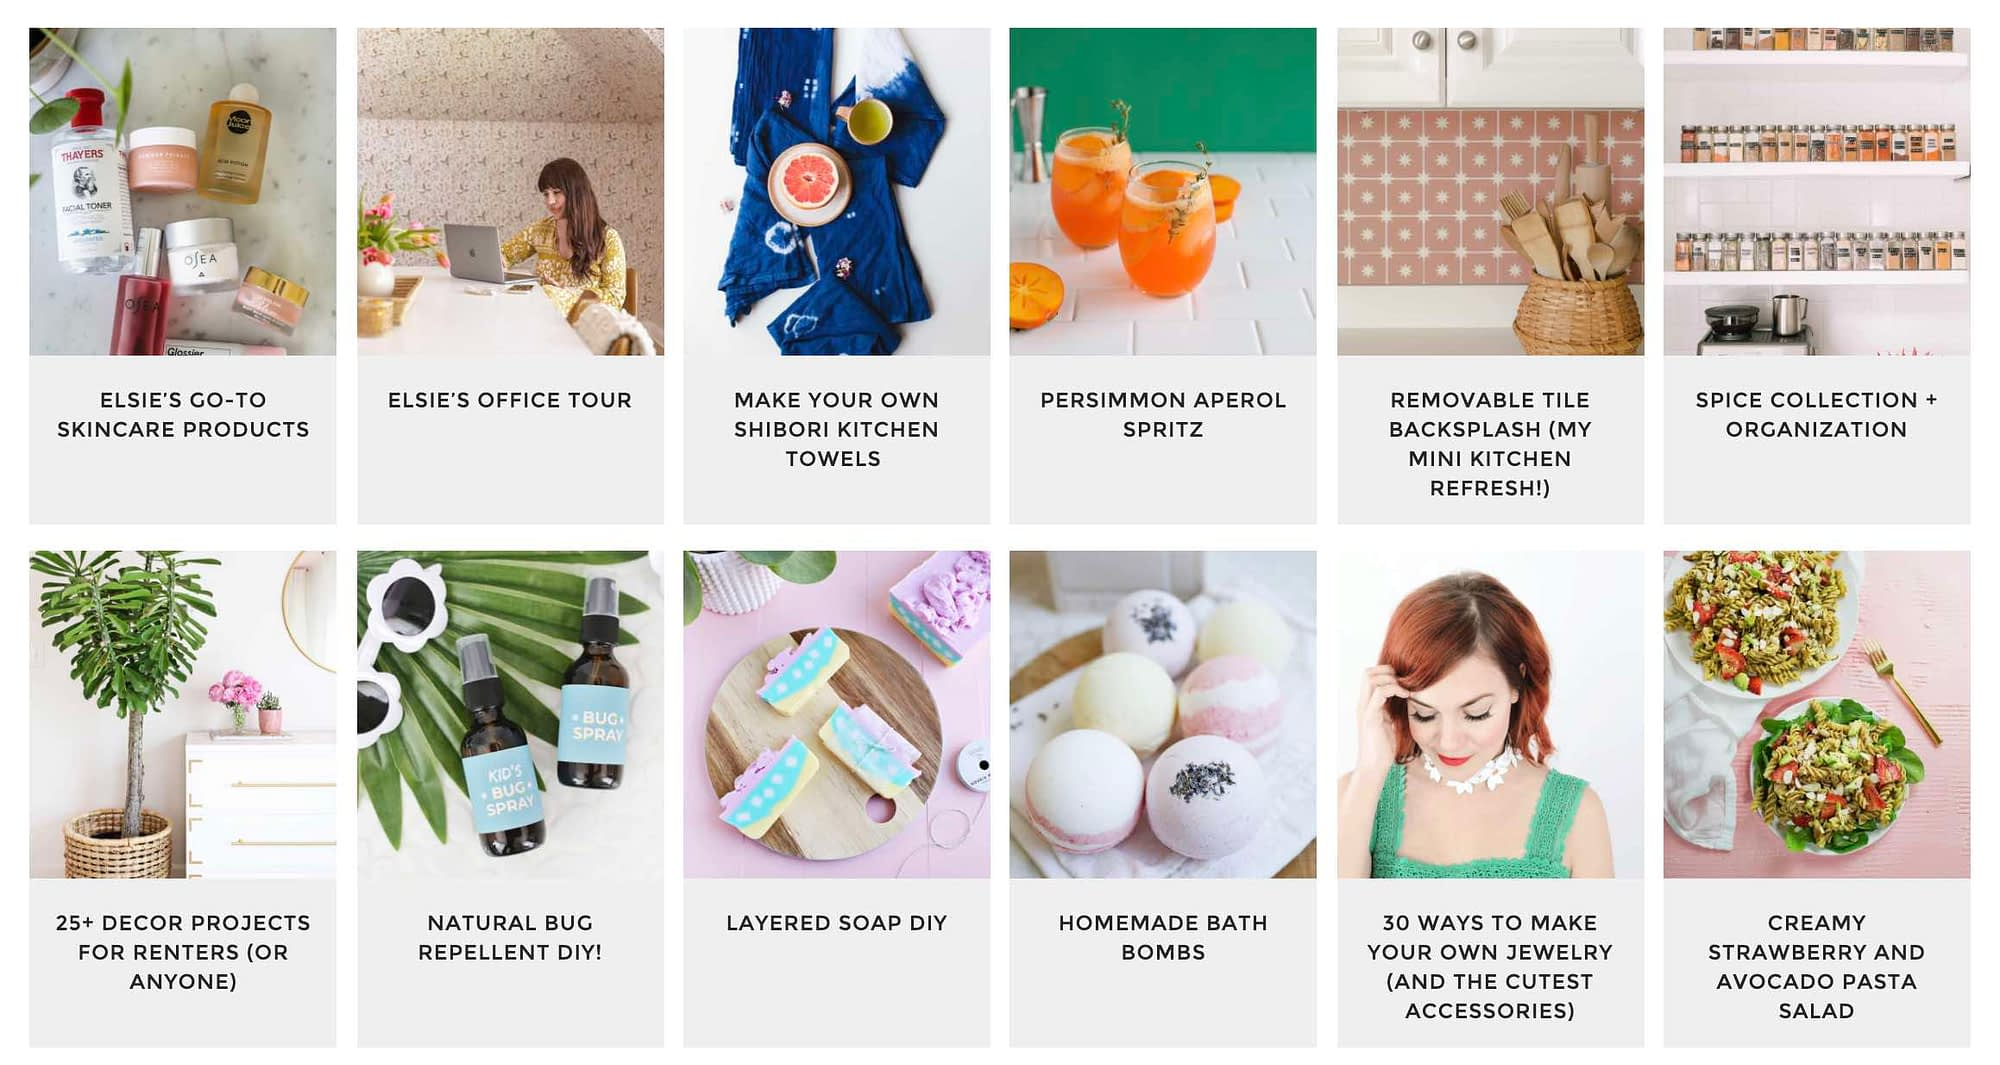 A Beautiful Mess: Sisters Elsie Larson and Emma Chapman run this blog covering a range of interesting tops, including crafts, décor, and general life advice. It's always fun, unexpected, and insightful.